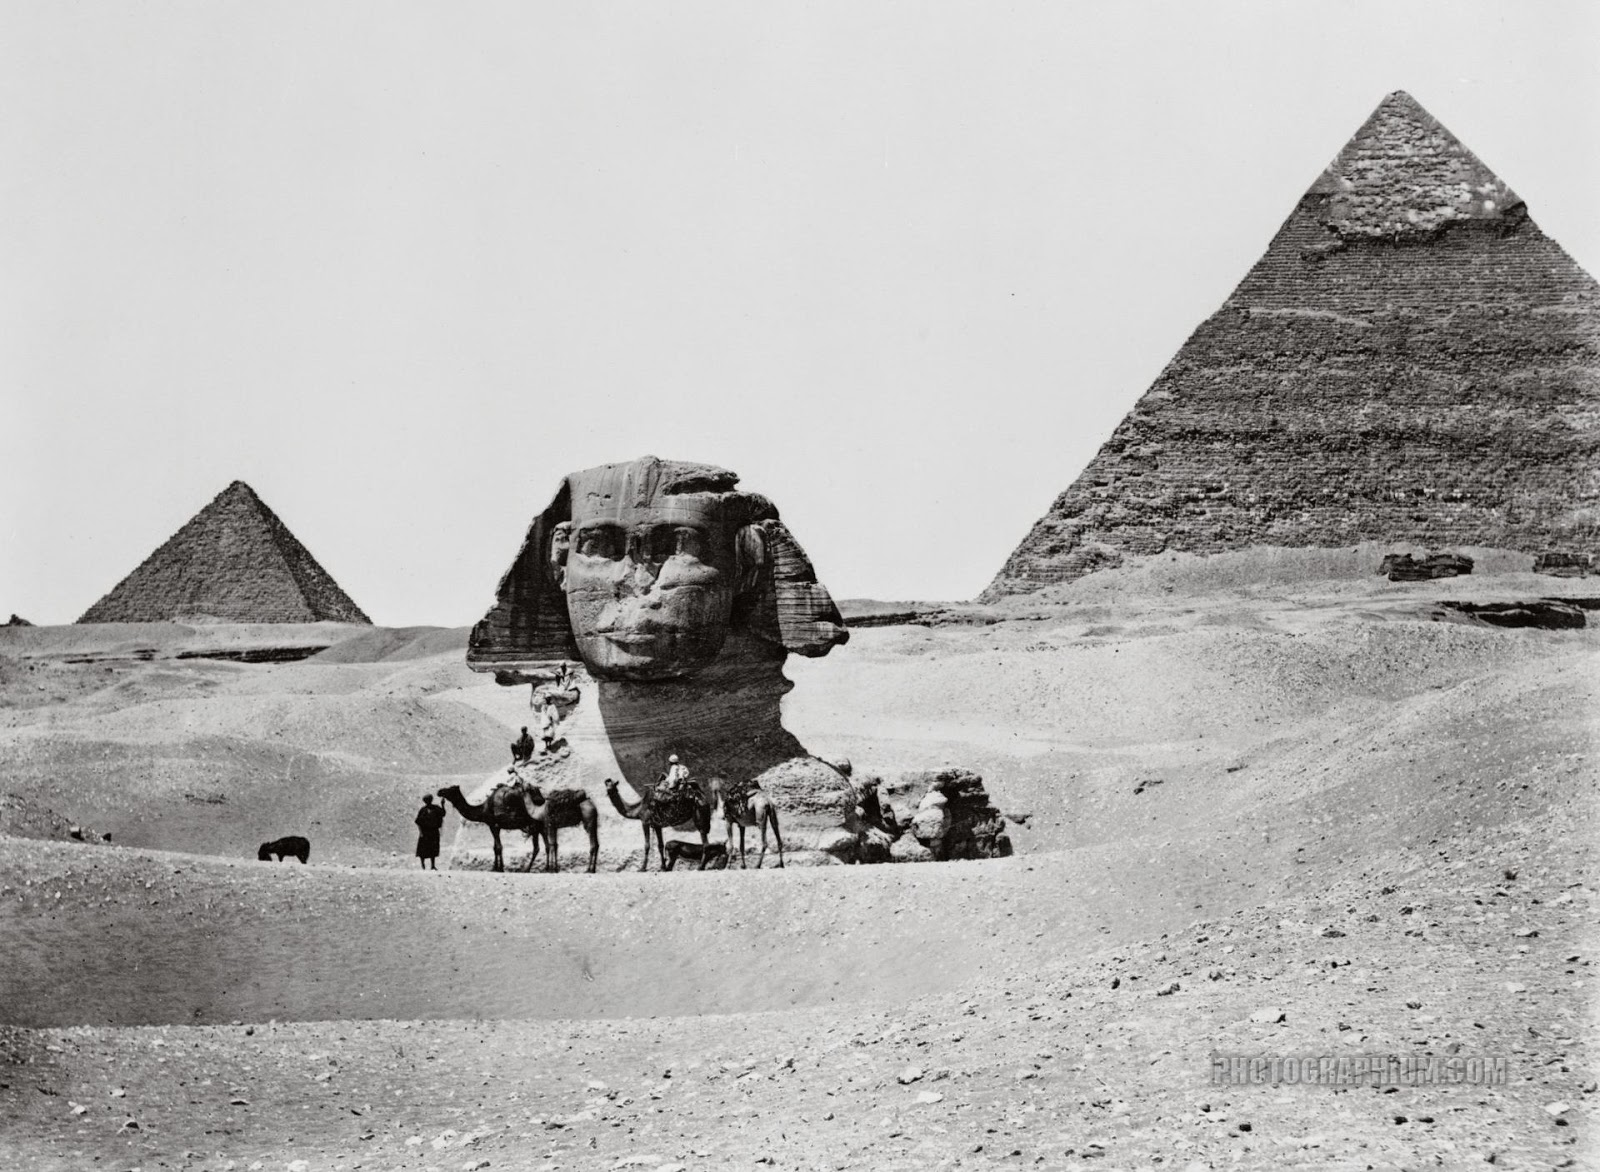 pyramids_and_sphinx._giza_egypt._1860-1890